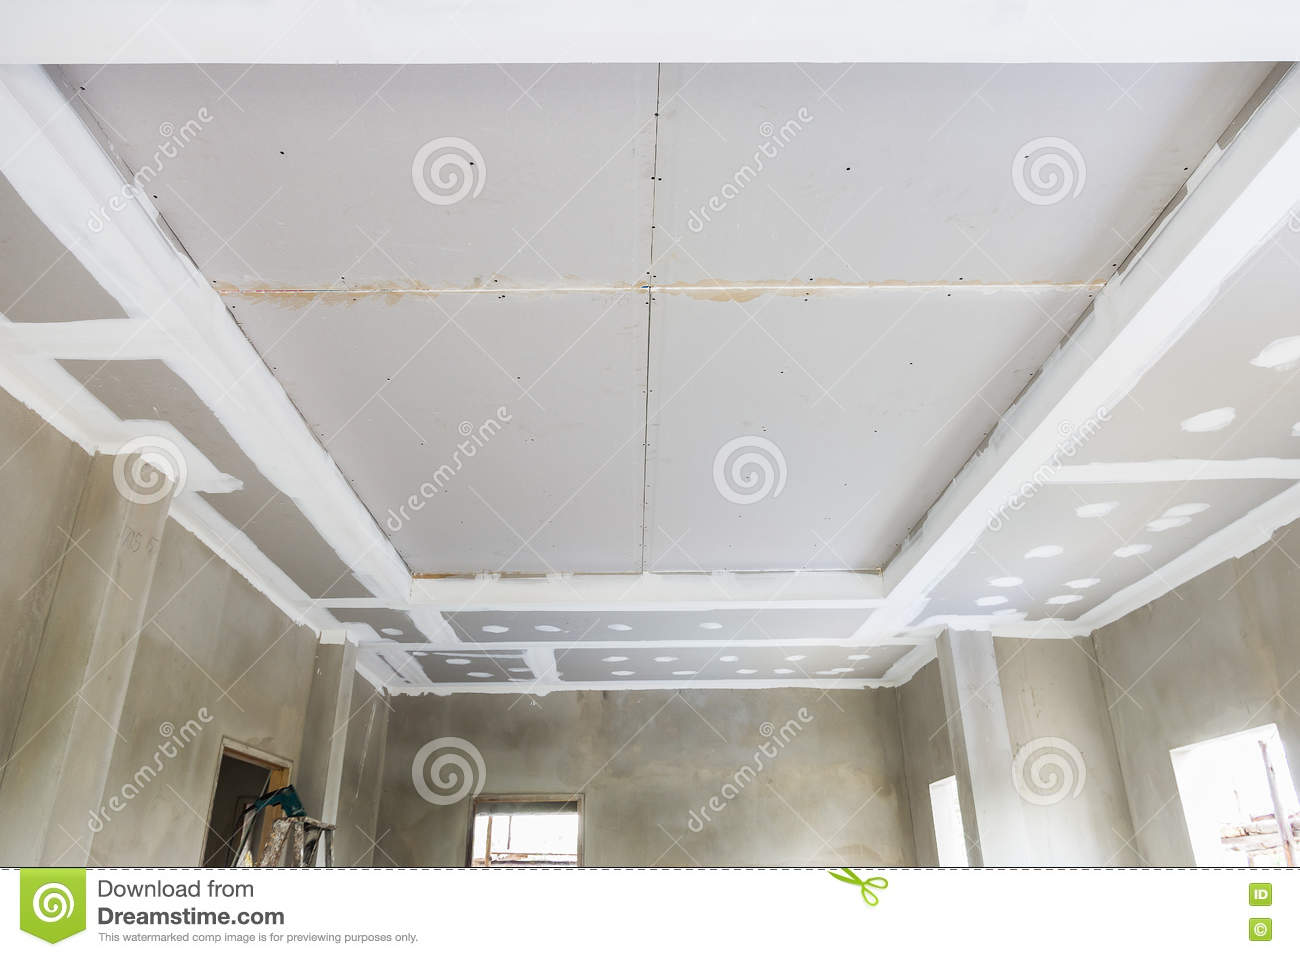 ceiling gypsum board stock image. image of architecture - 72650201